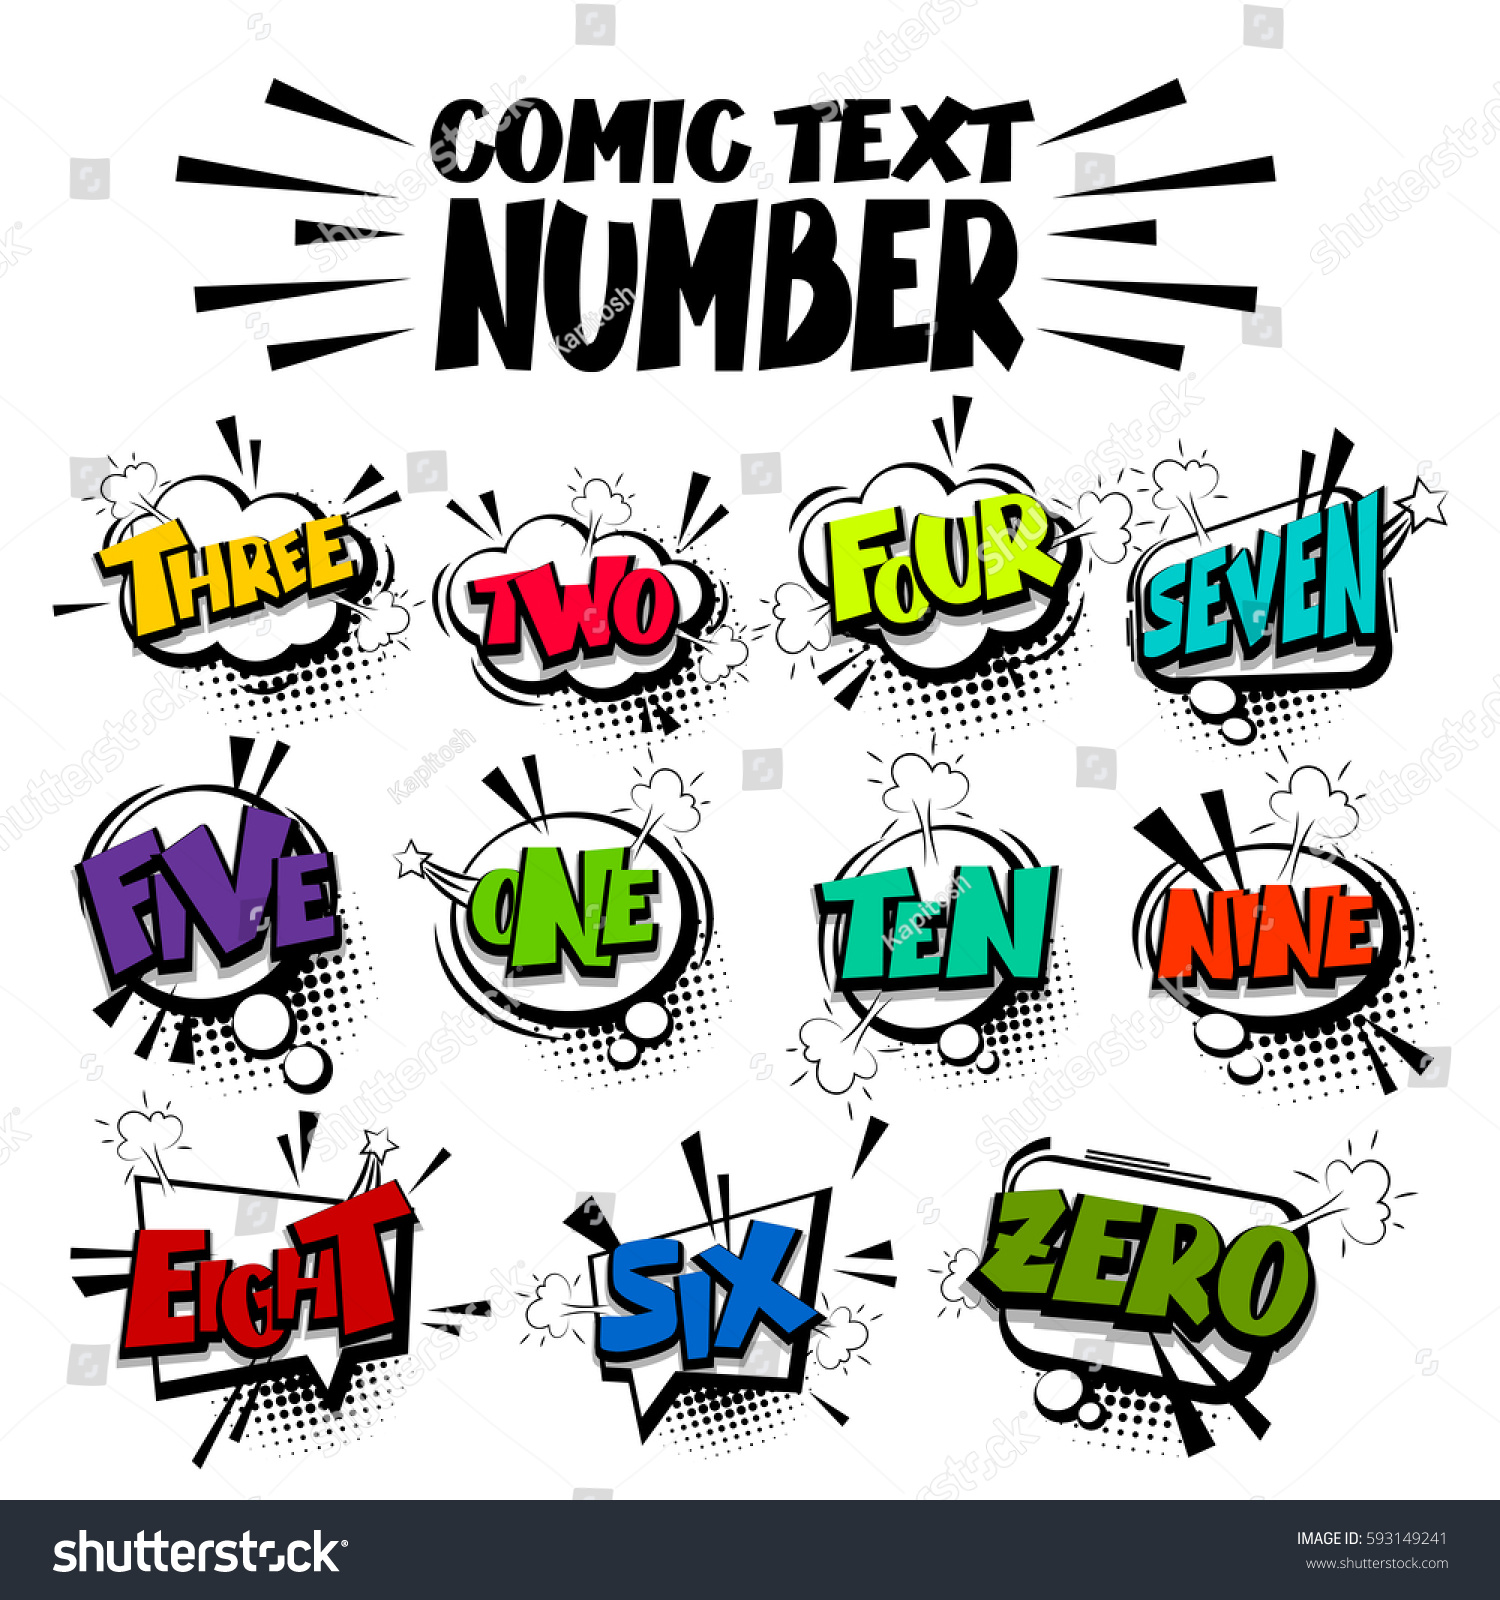 New number message funny